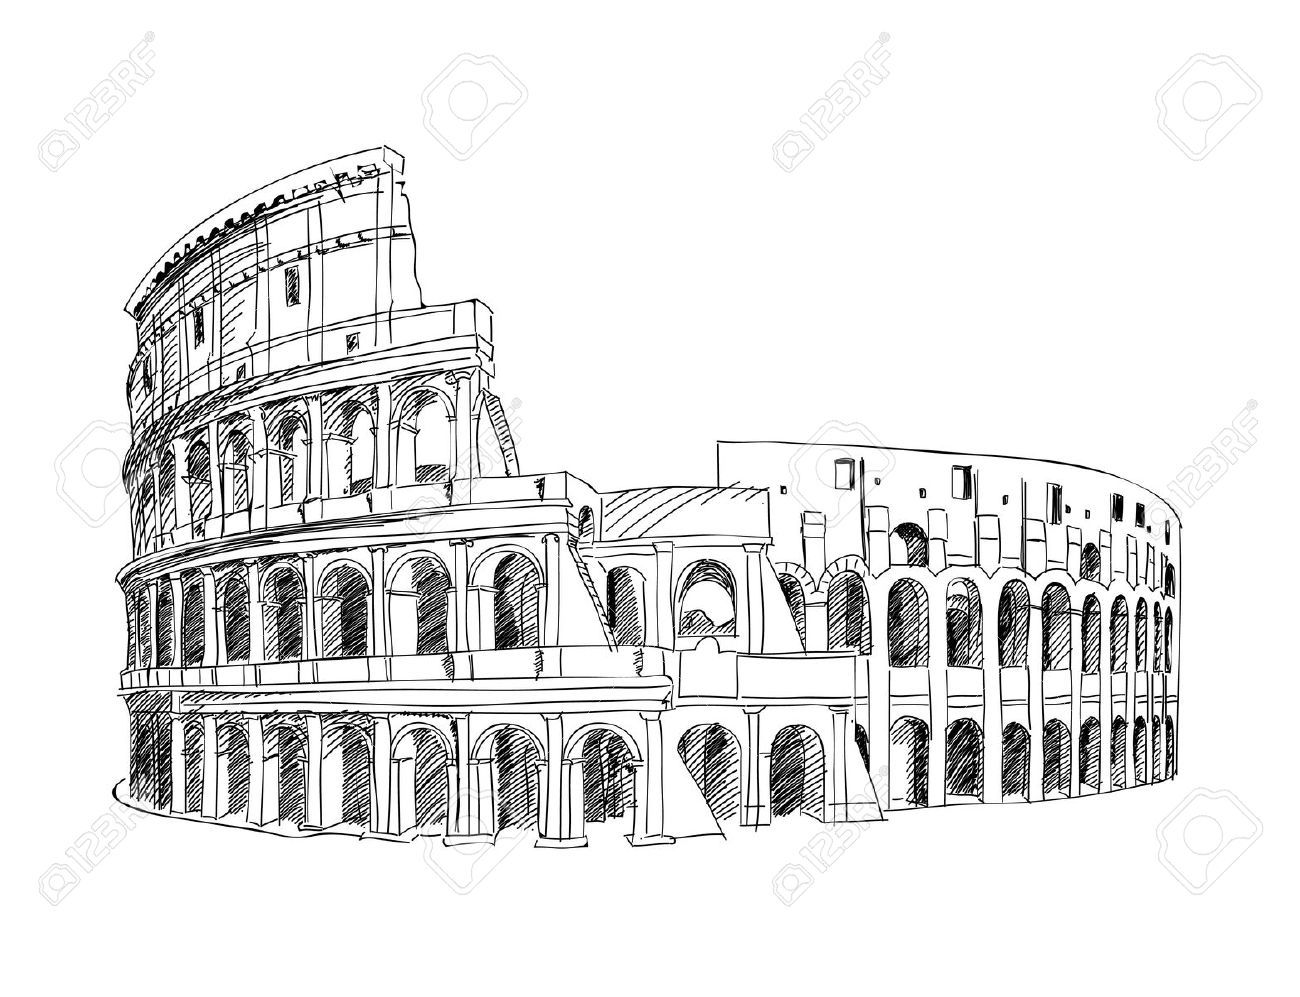 Colosseum Simple Coloring Pages